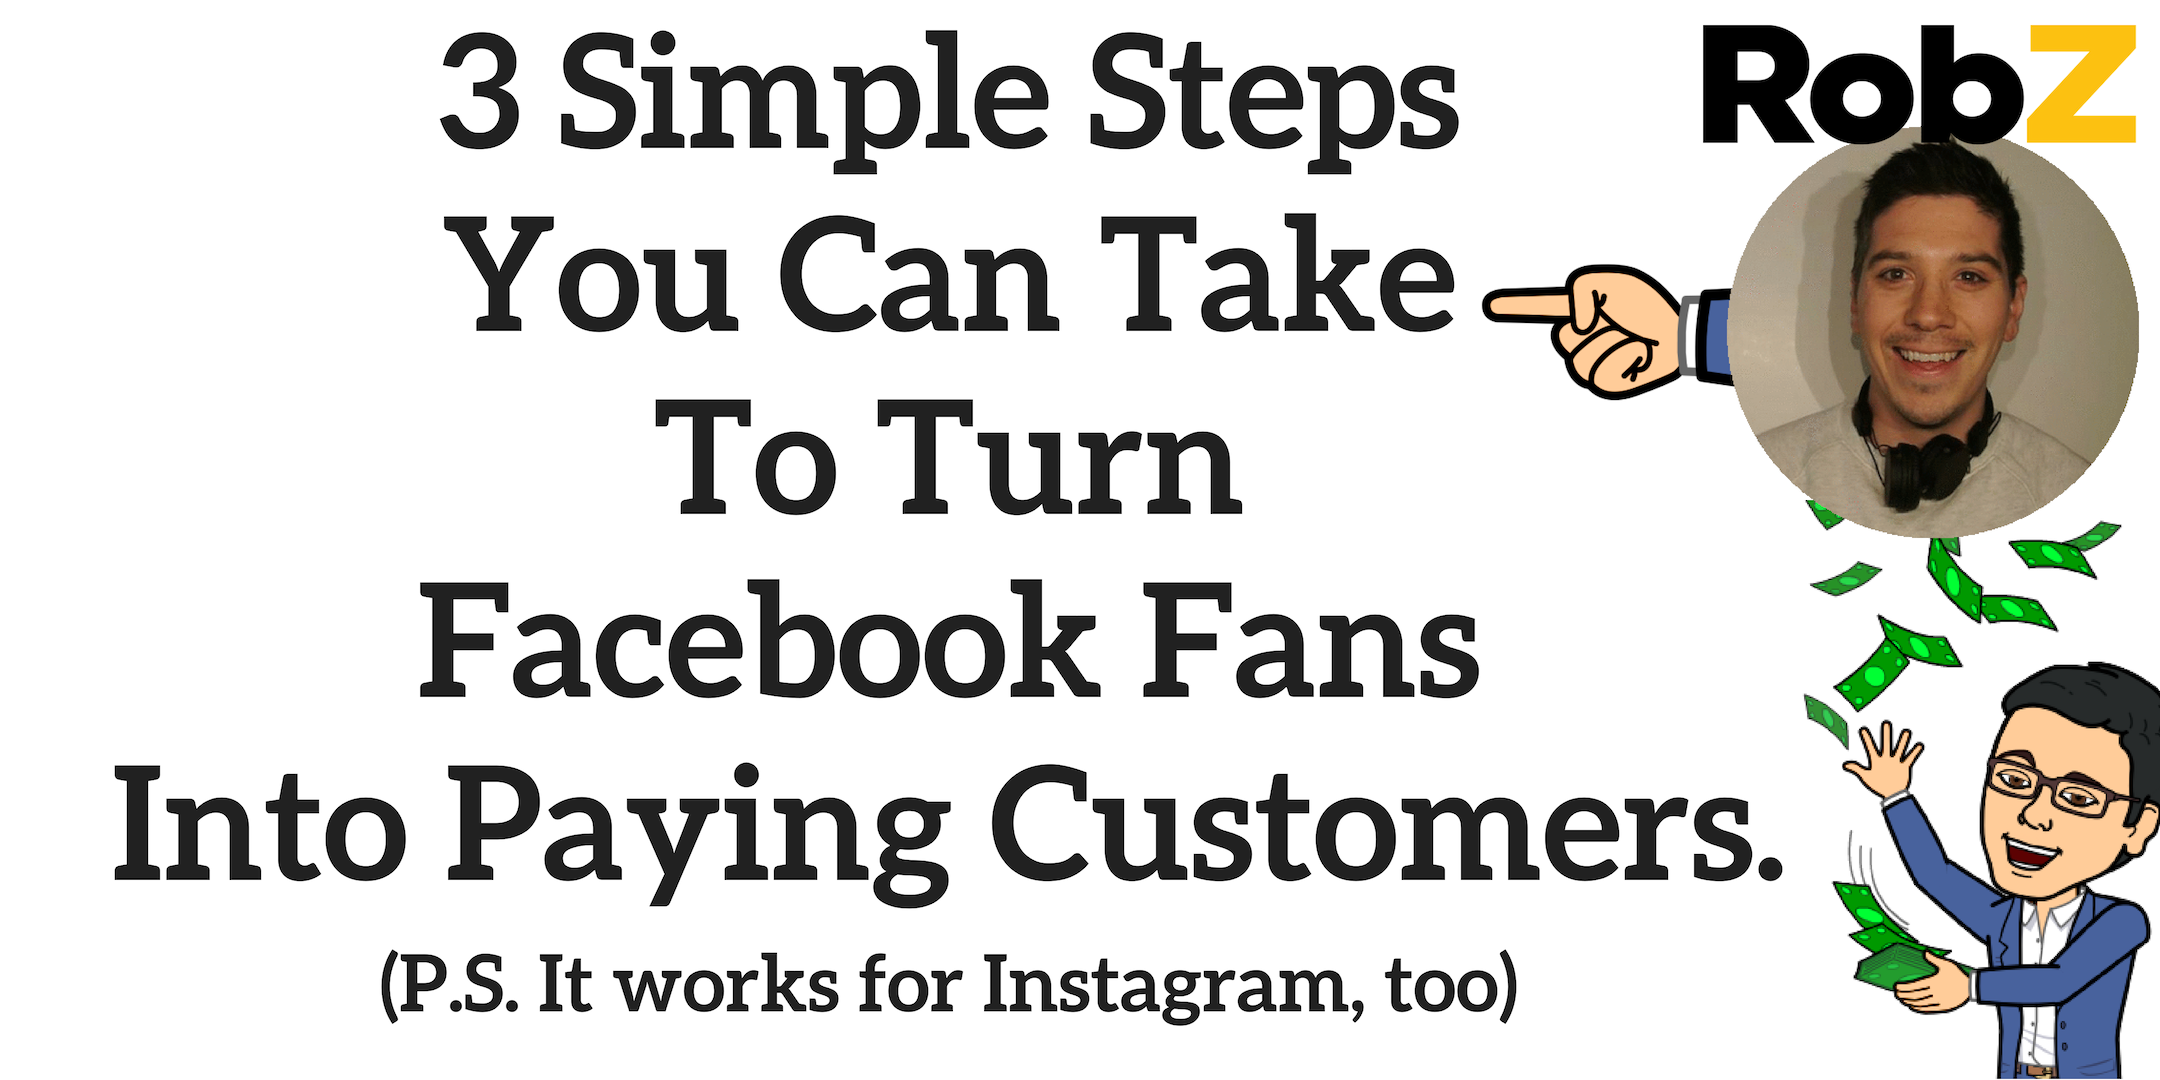 3 Simple Steps You Can Take Today To Turn Facebook Fans Into Customers (2).png